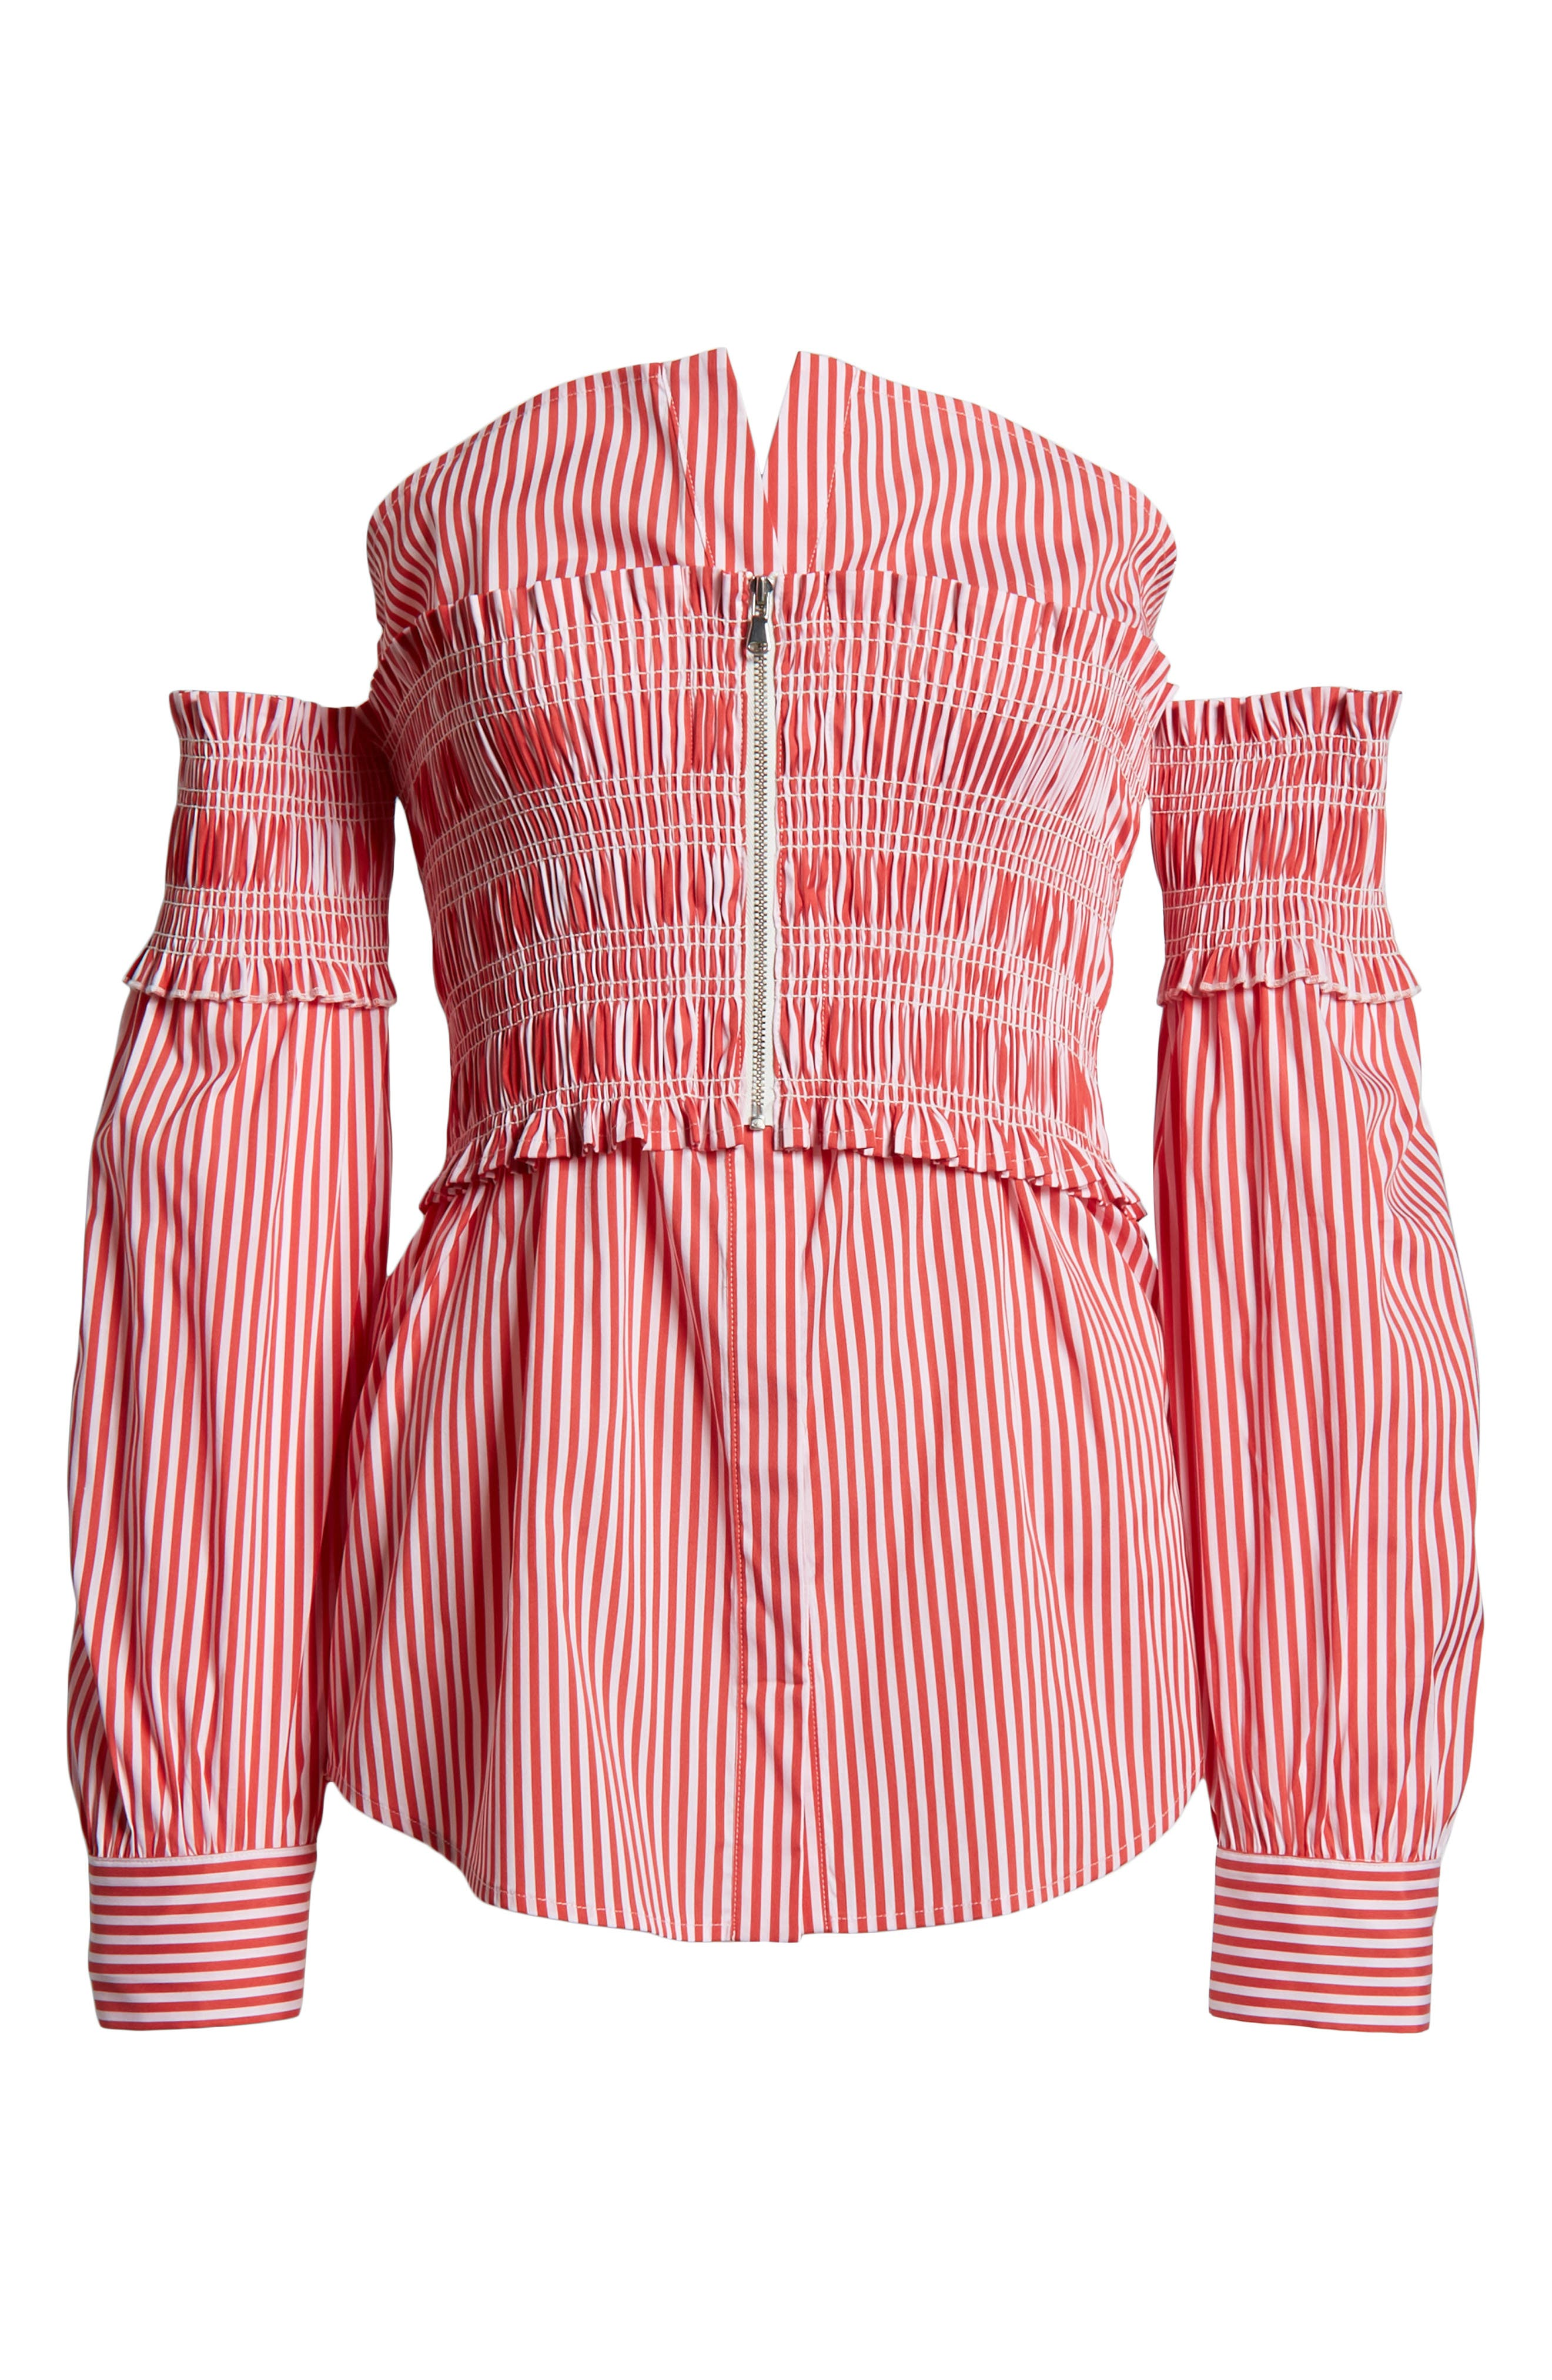 Stripe Smocked Corset Shirt,                             Alternate thumbnail 7, color,                             Red/ White Lucy Stripe